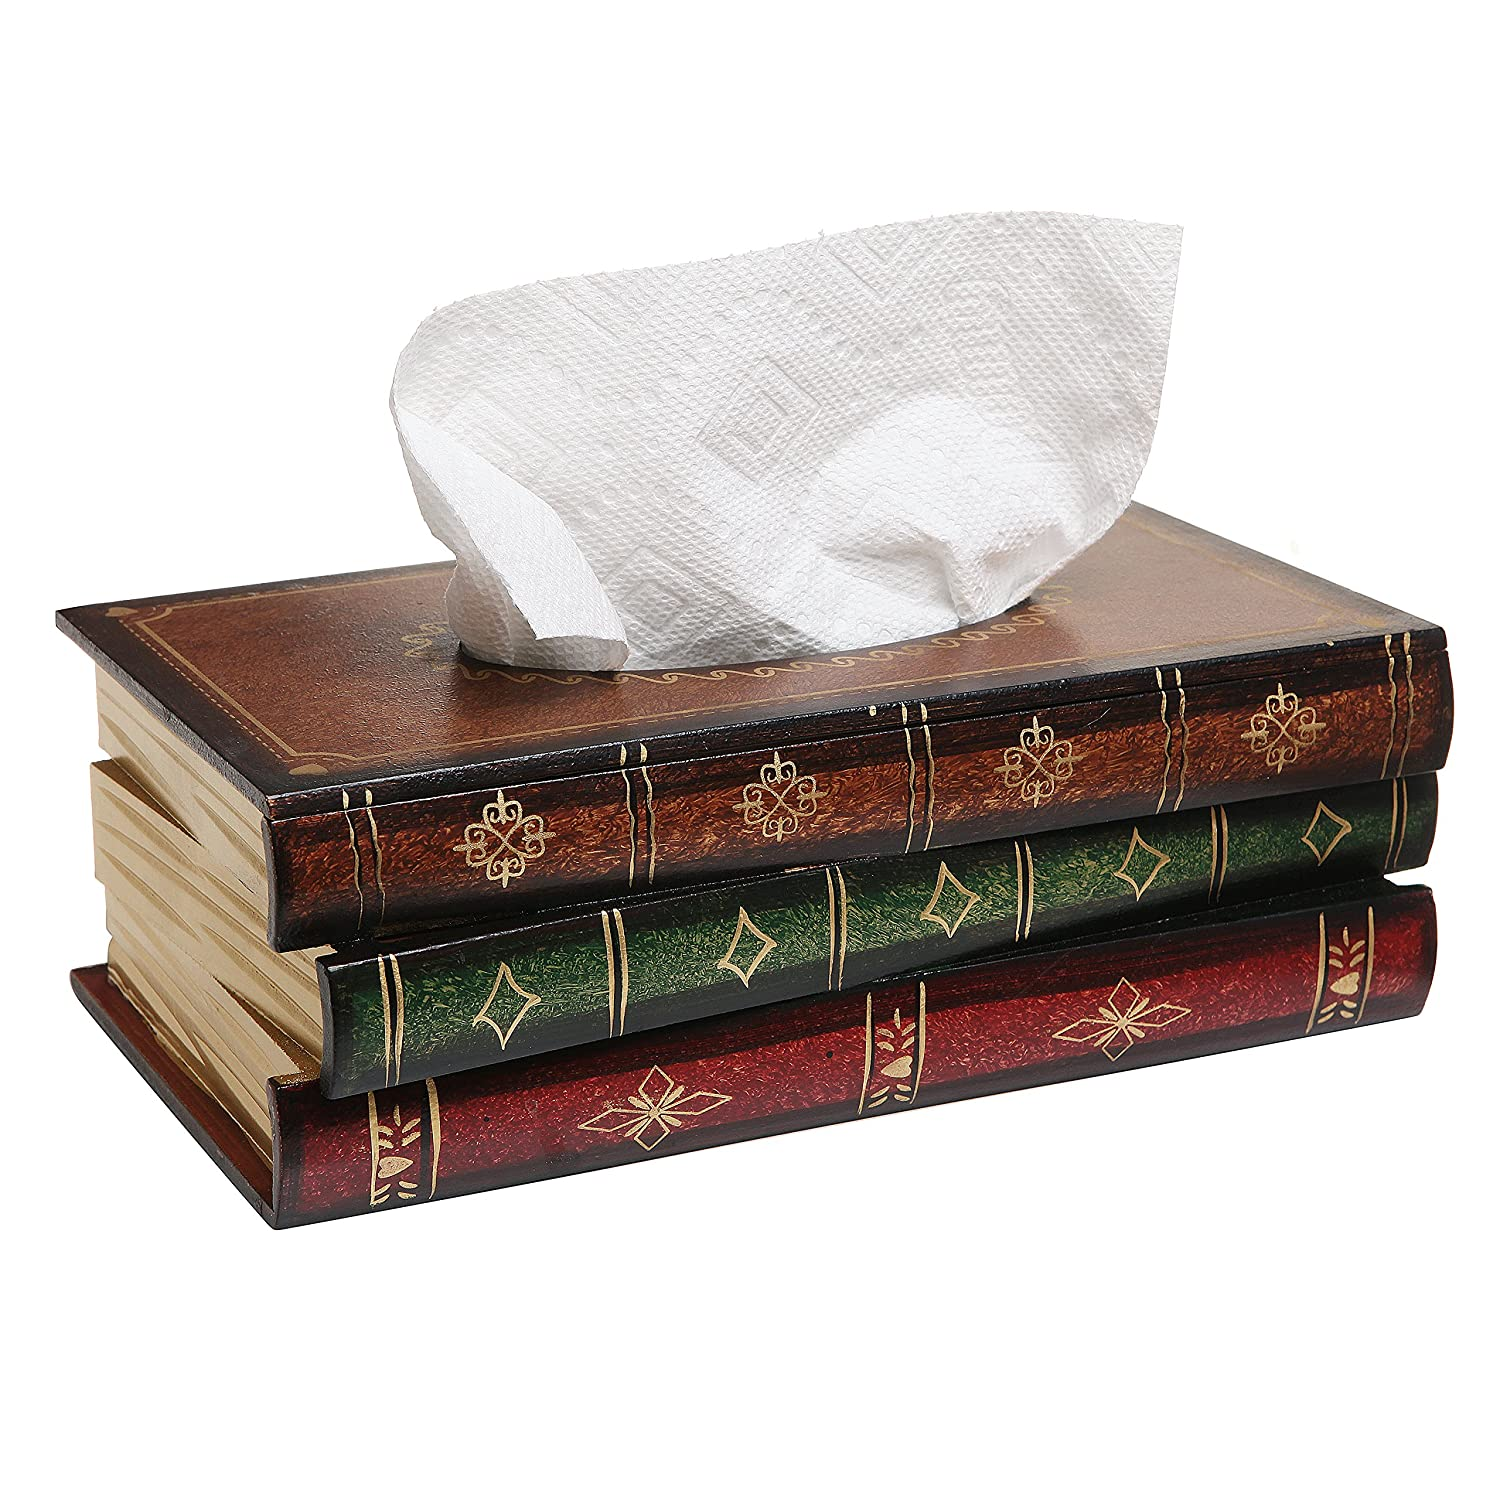 antique book design wood bathroom facial tissue